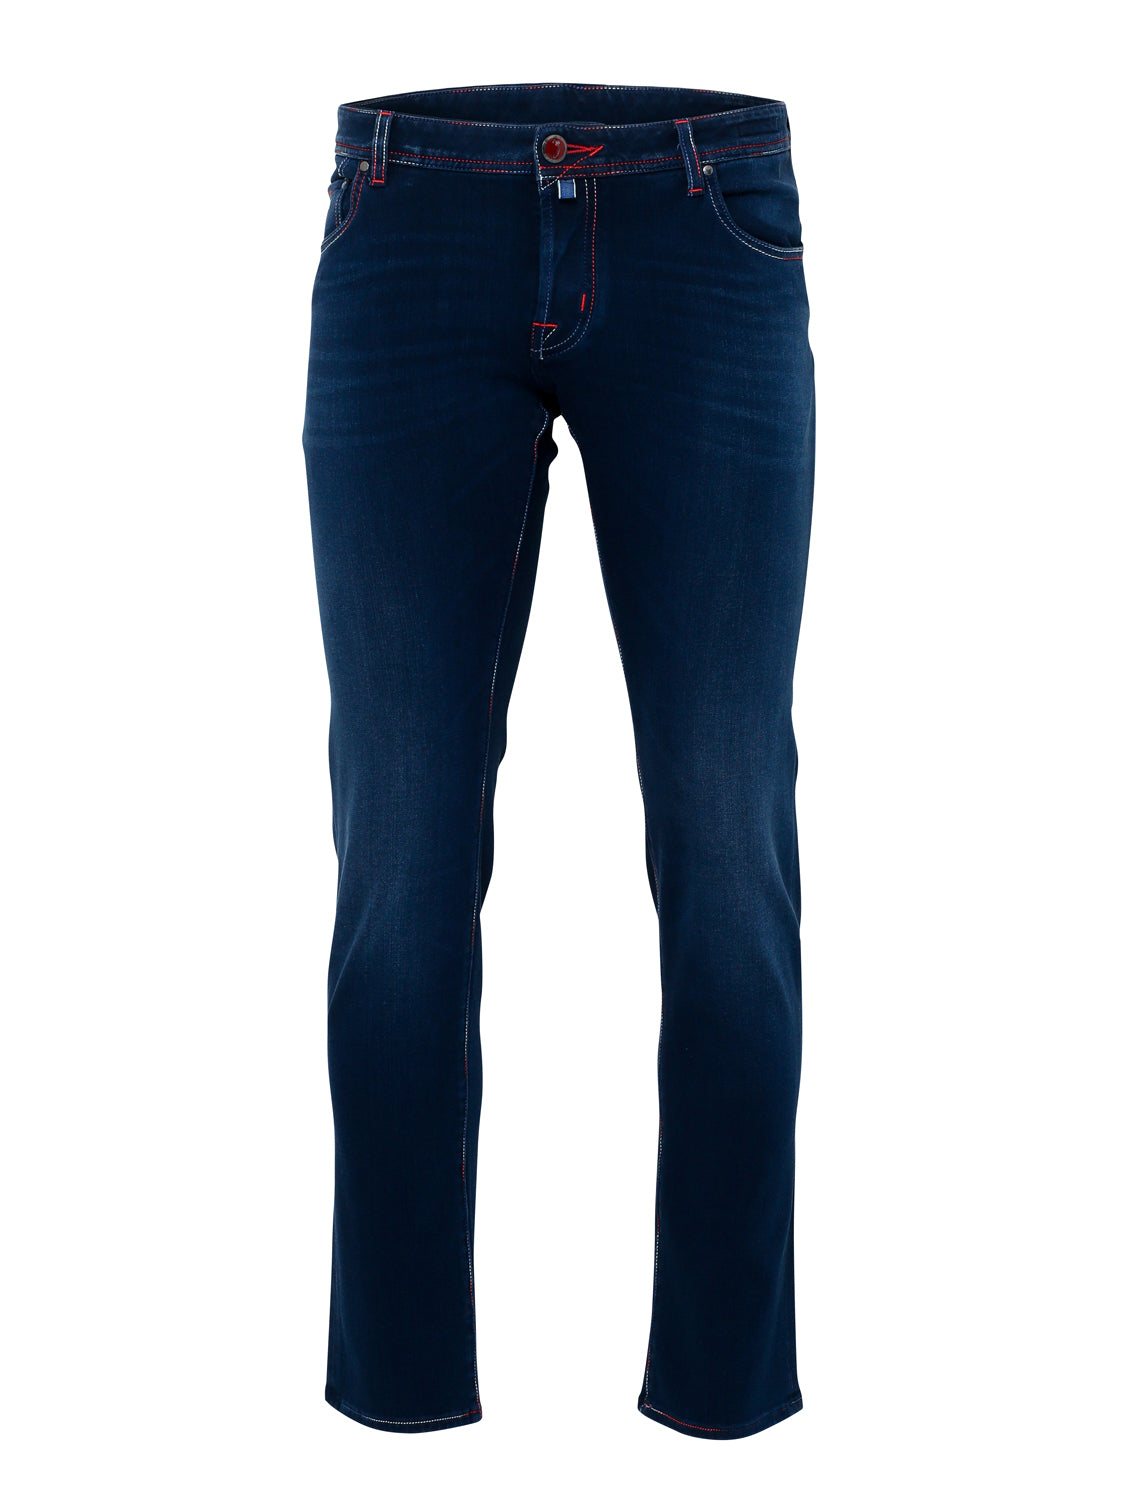 Jacob Cohen J622 Red Badge Stretch Jeans (Dark Wash) - Union 22